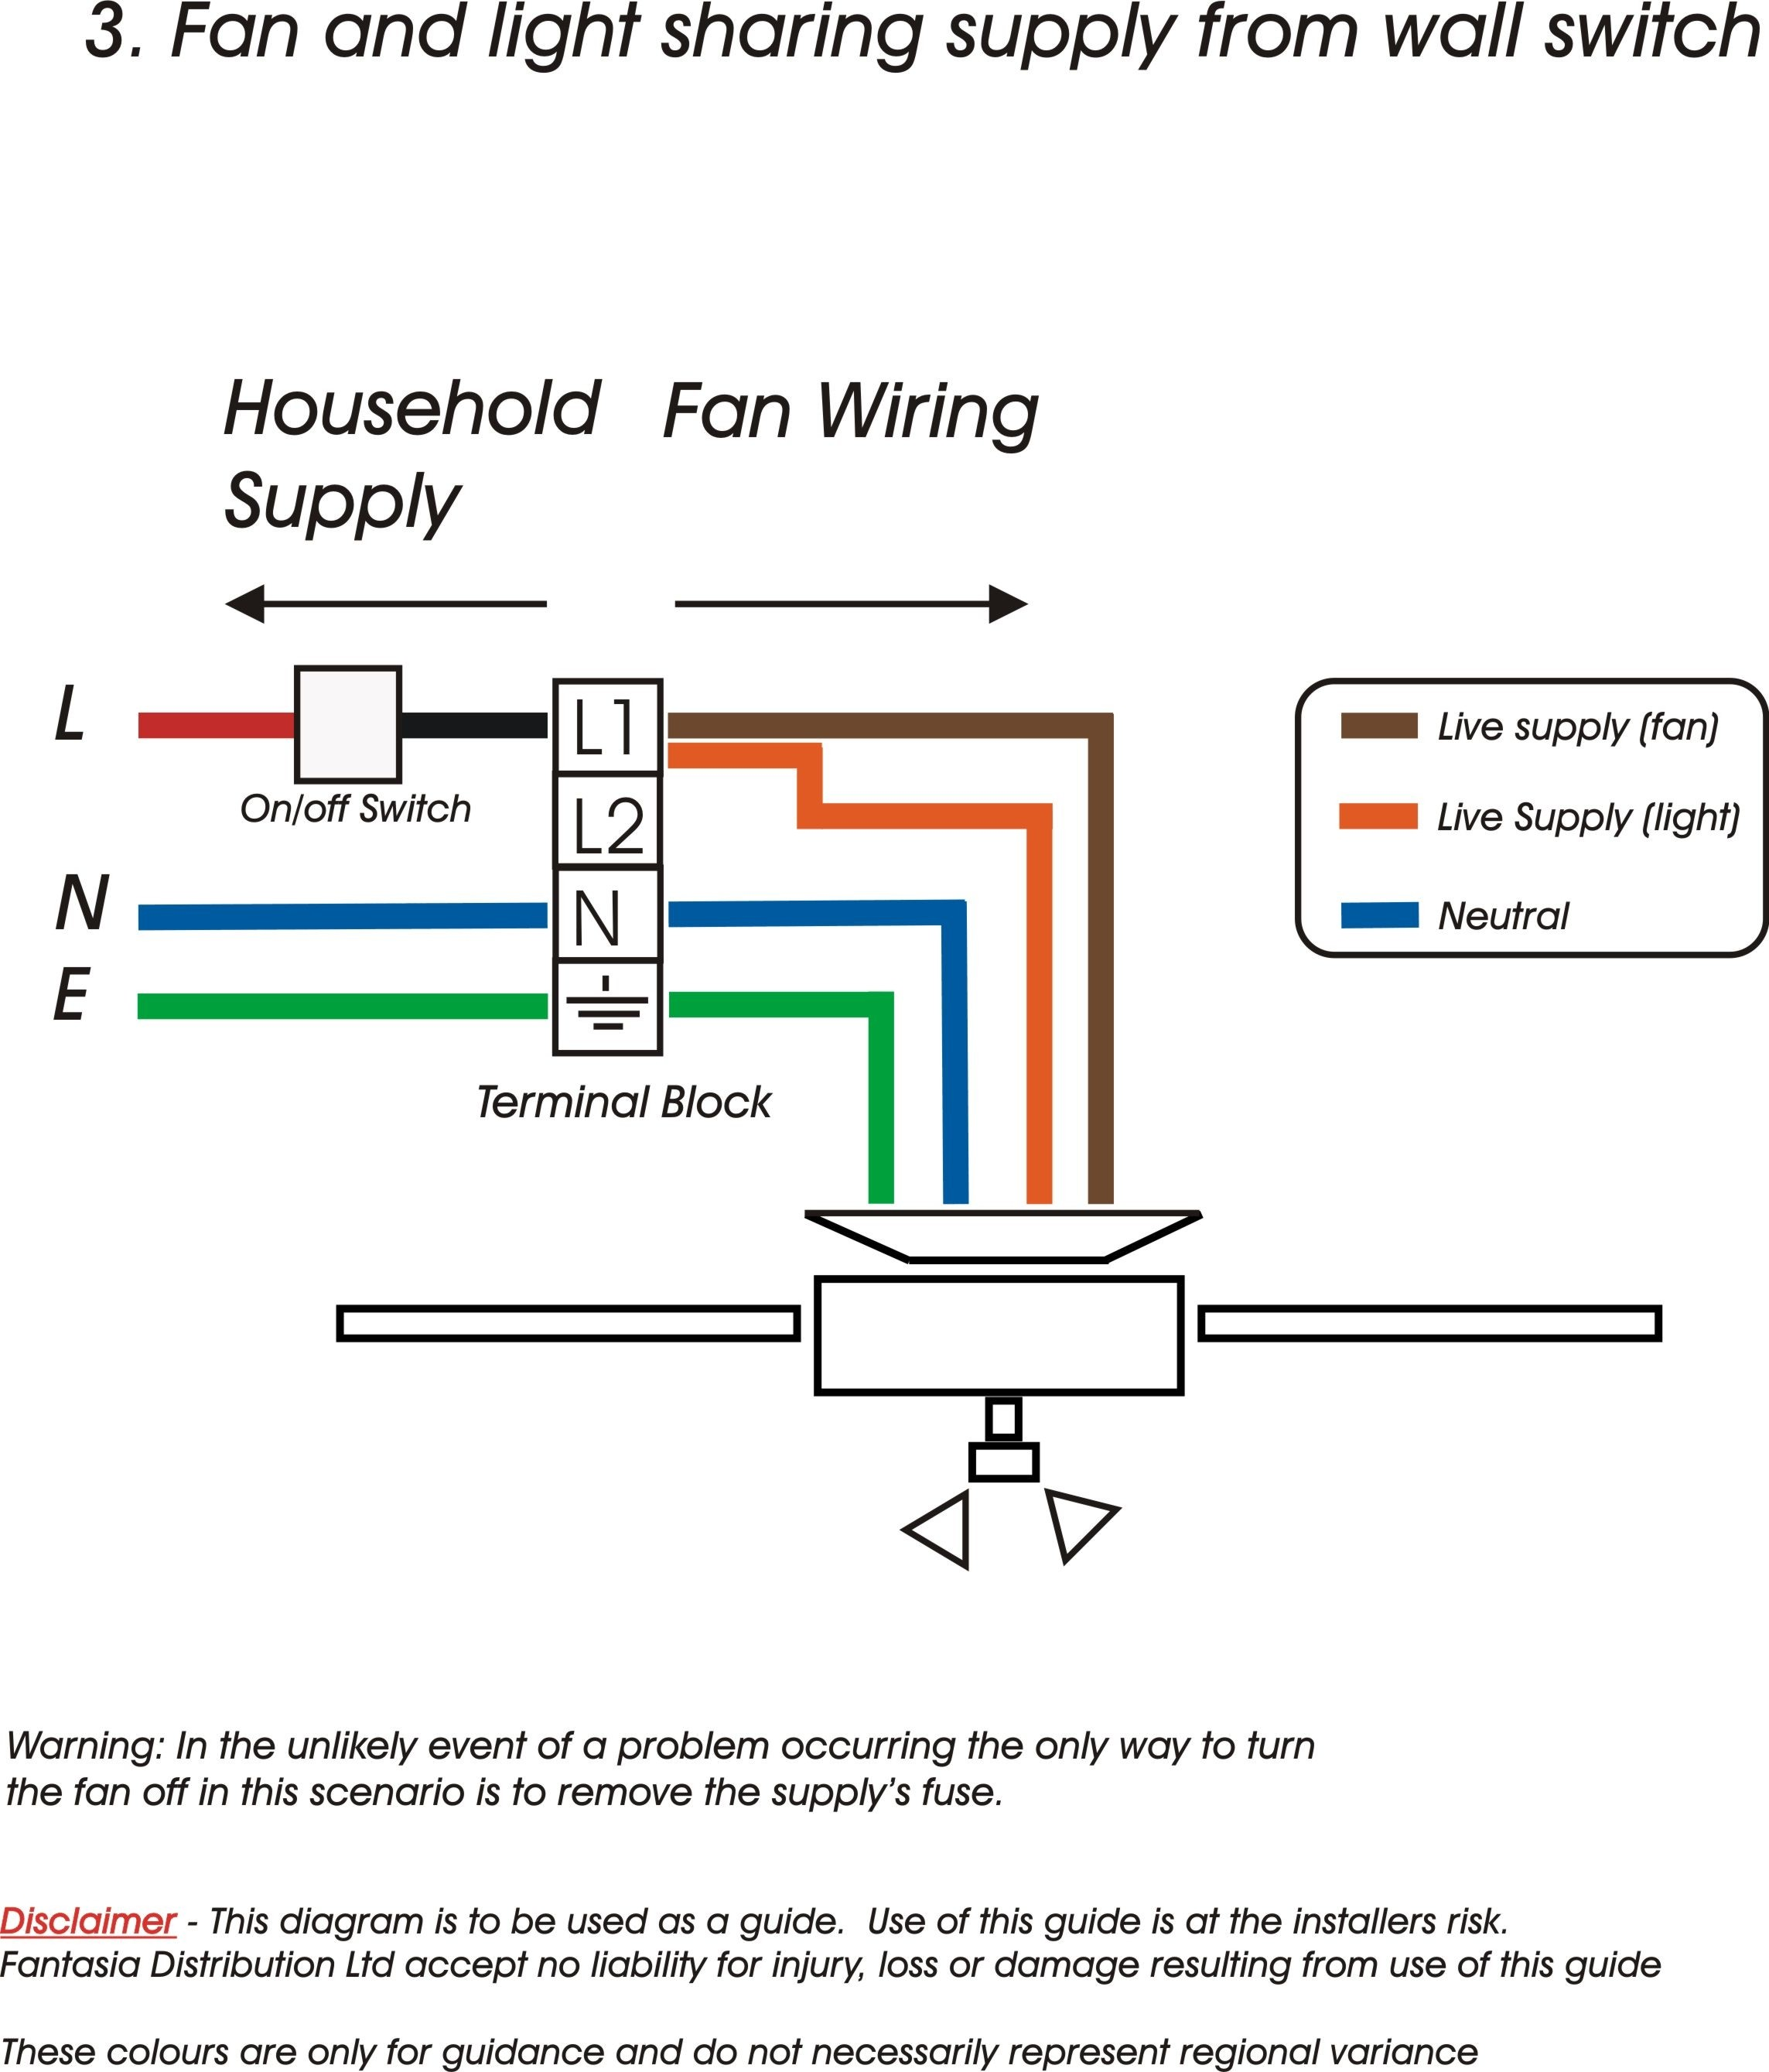 Dimmable Ballast Wiring Diagram Ceiling Fan Reverse Switch Wiring Diagram B2network Of Dimmable Ballast Wiring Diagram